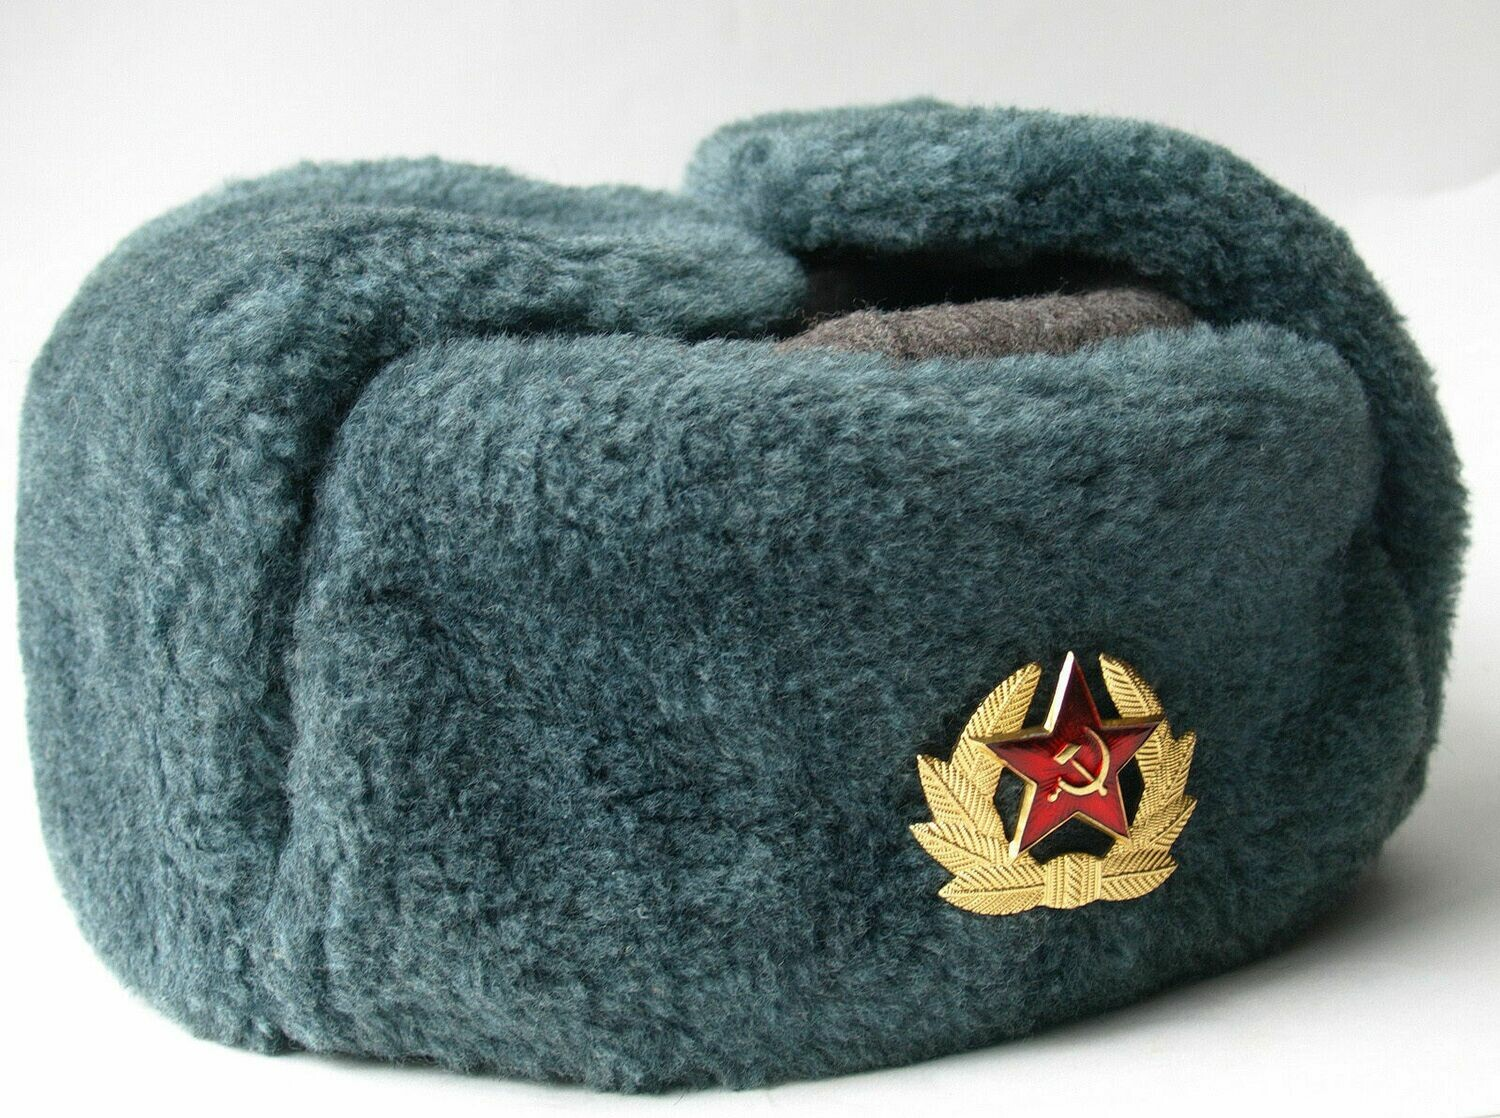 Authentic Soviet ushanka, Russian fur hat + Badge, USSR army soldier winter caps